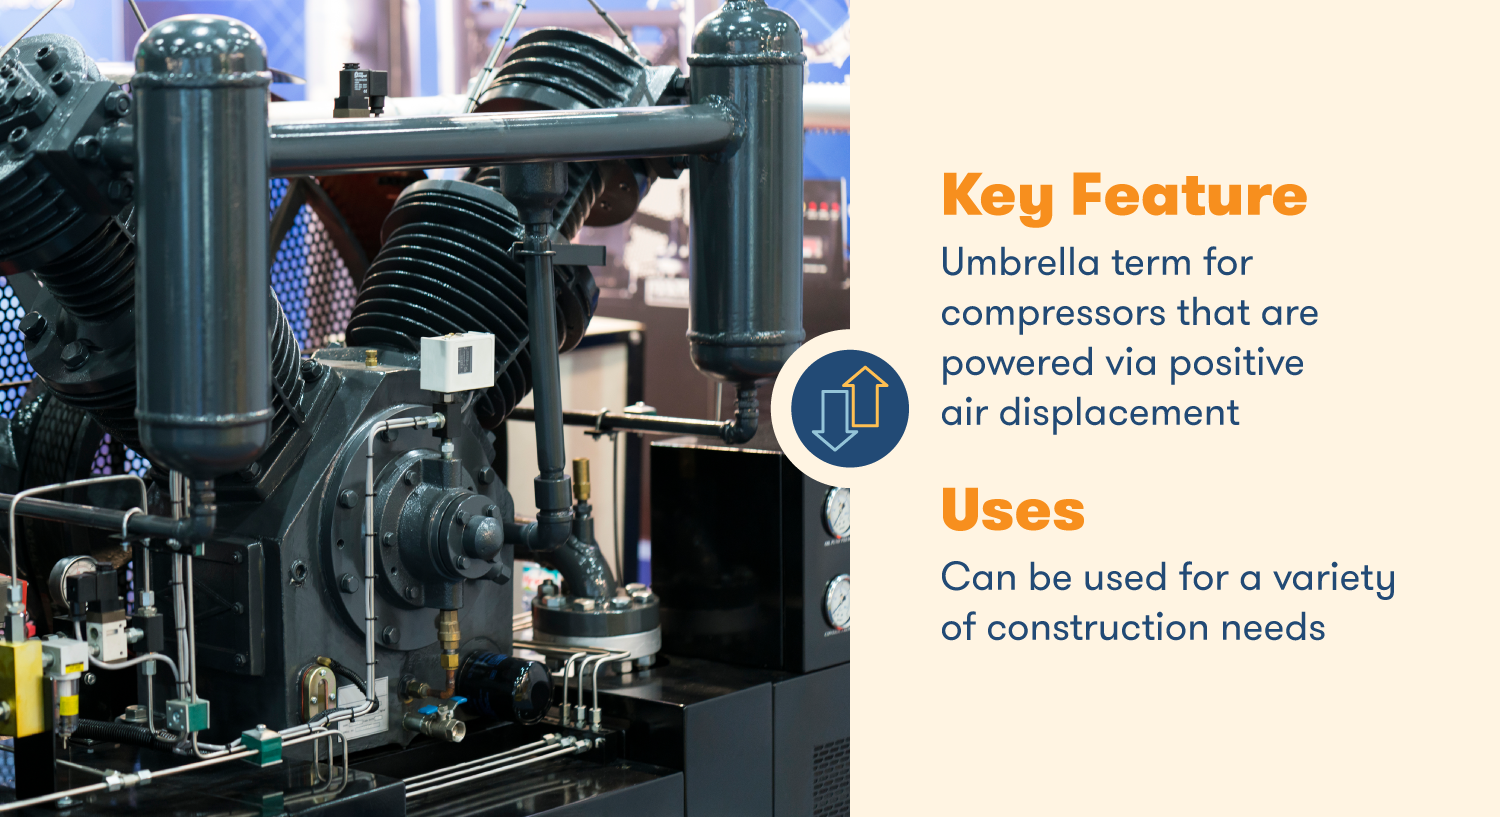 Displacement compressors refer to compressors that are powered via positive air displacement.